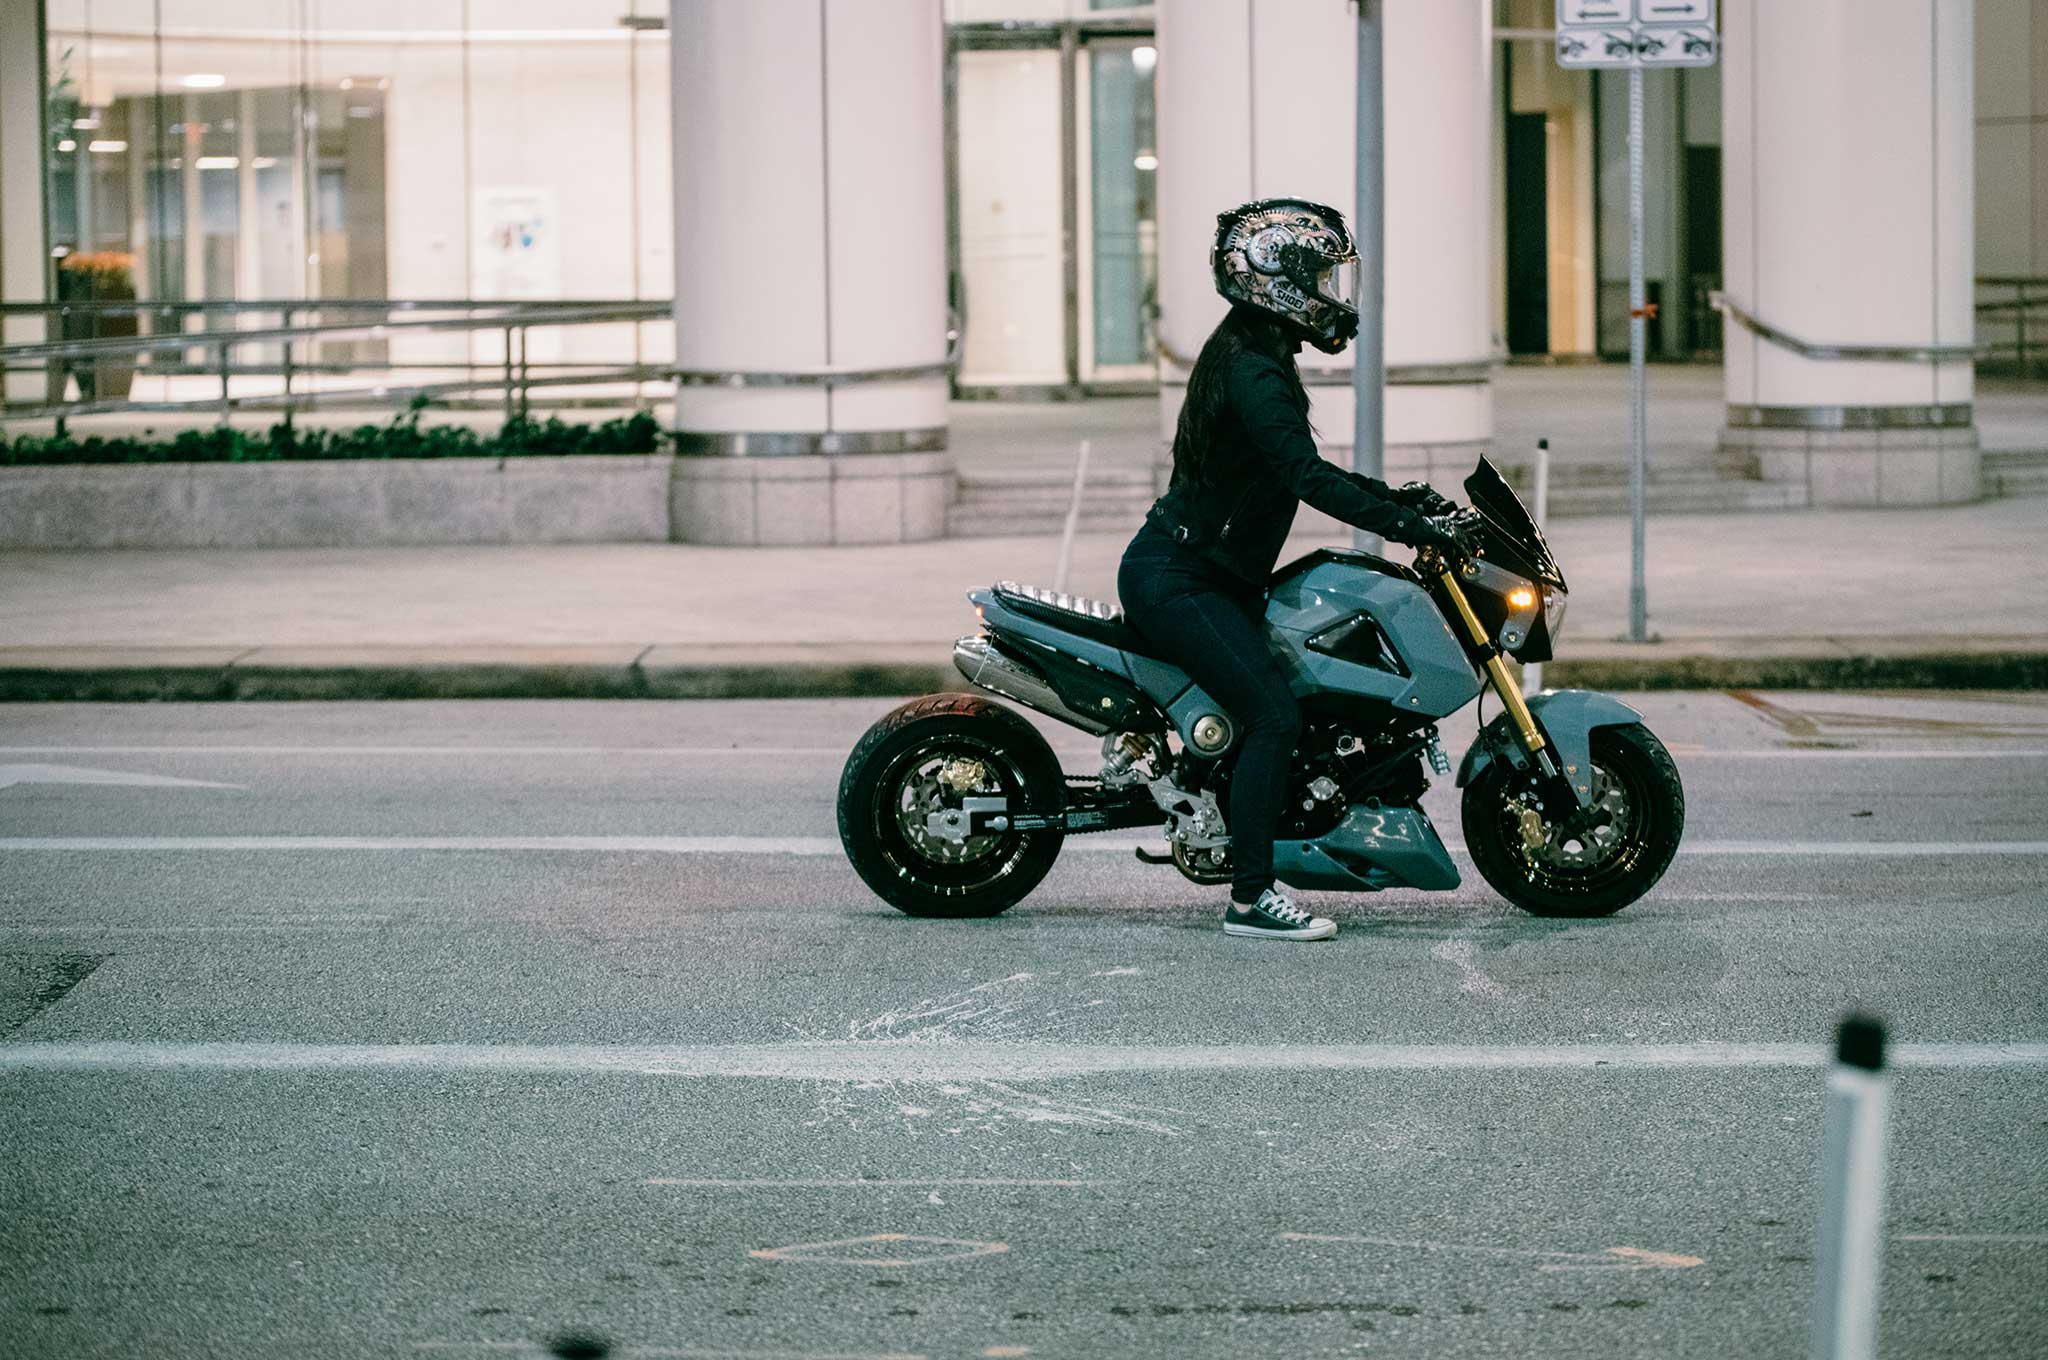 2015 Honda Grom - The Gromance Is Real